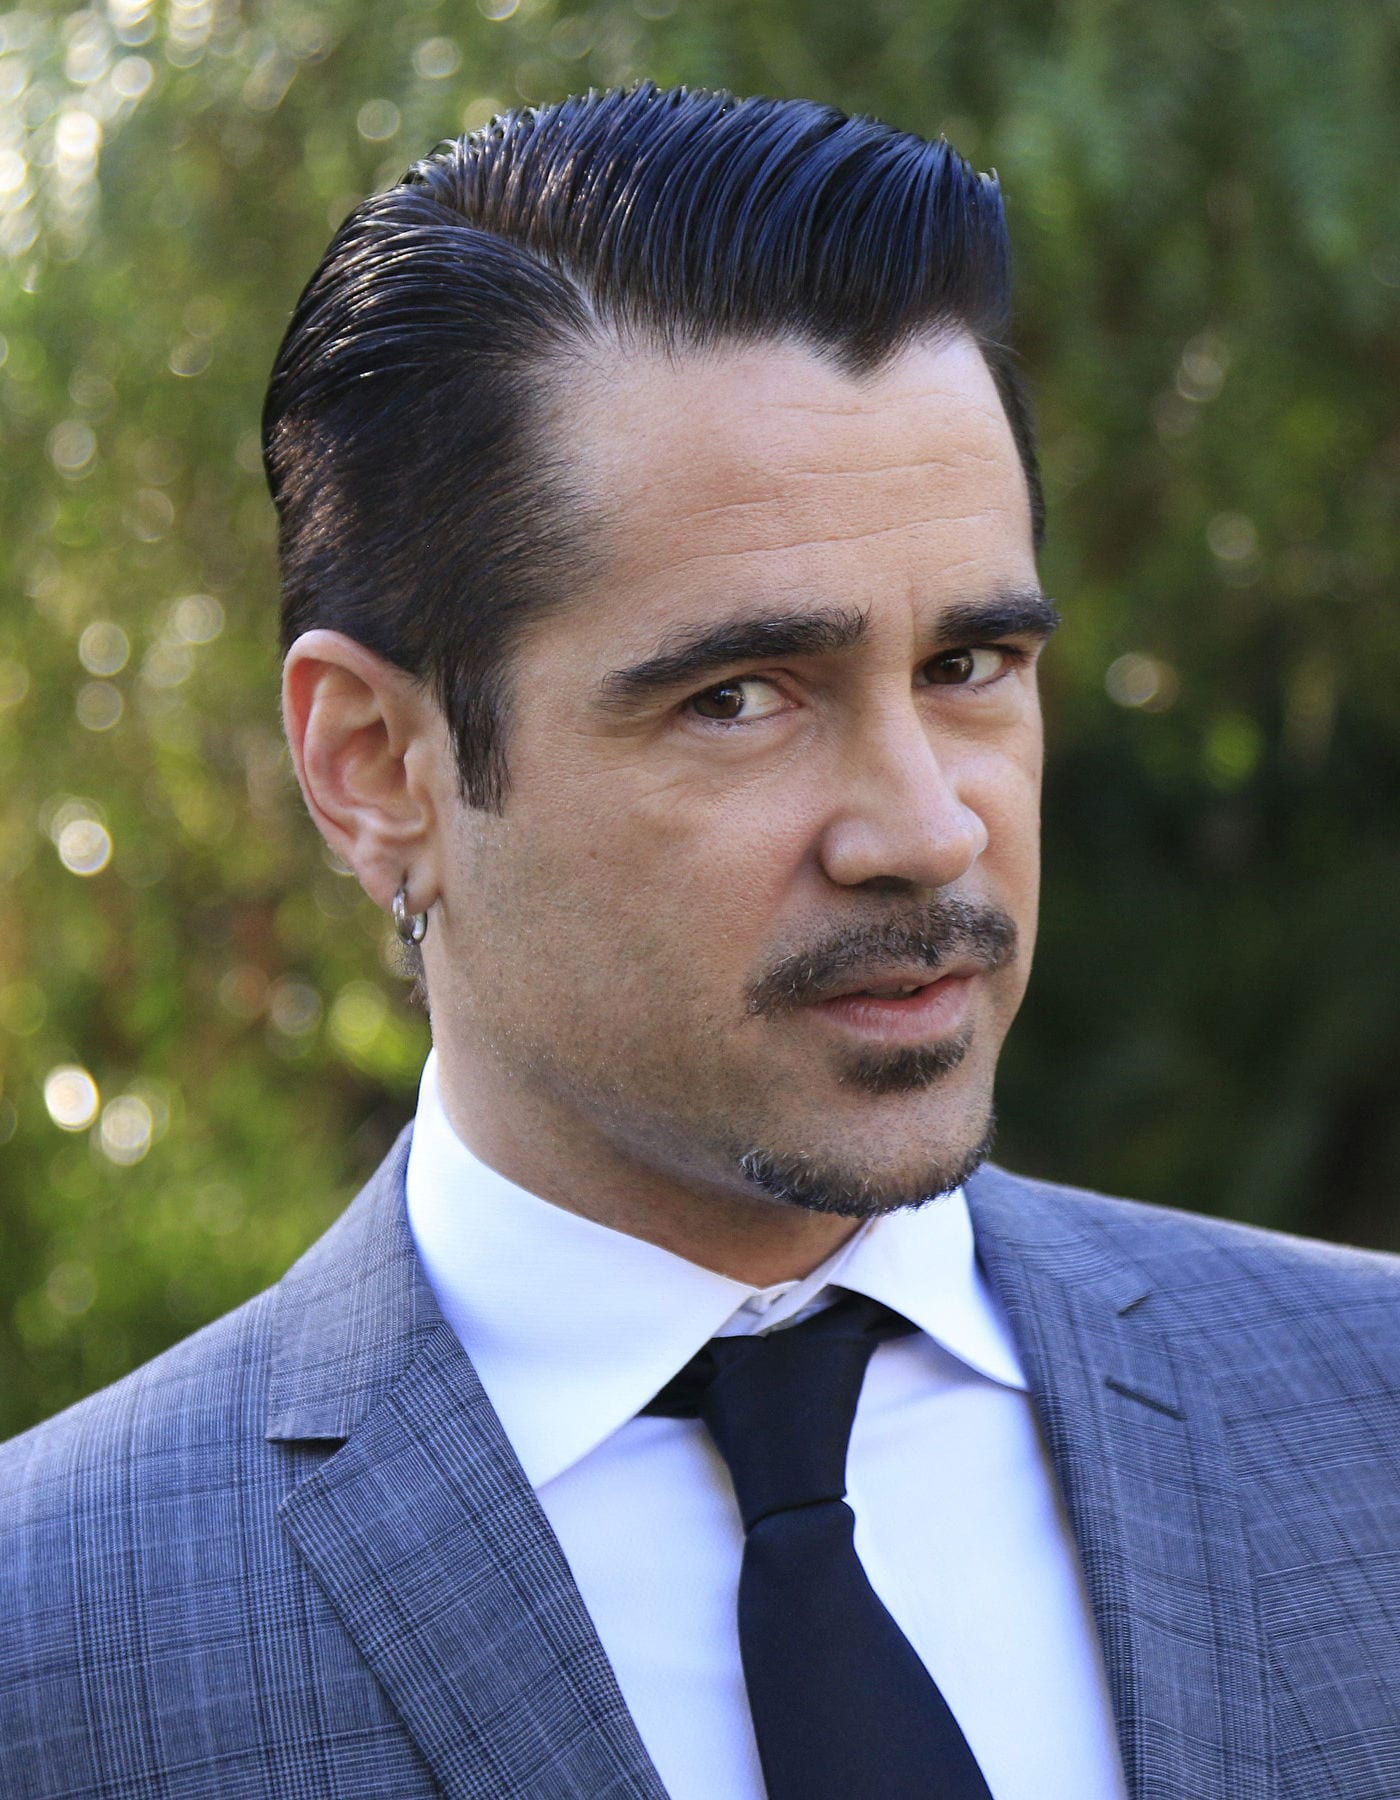 Colin Farrell classic gentleman slicked back side part by Joe Seer